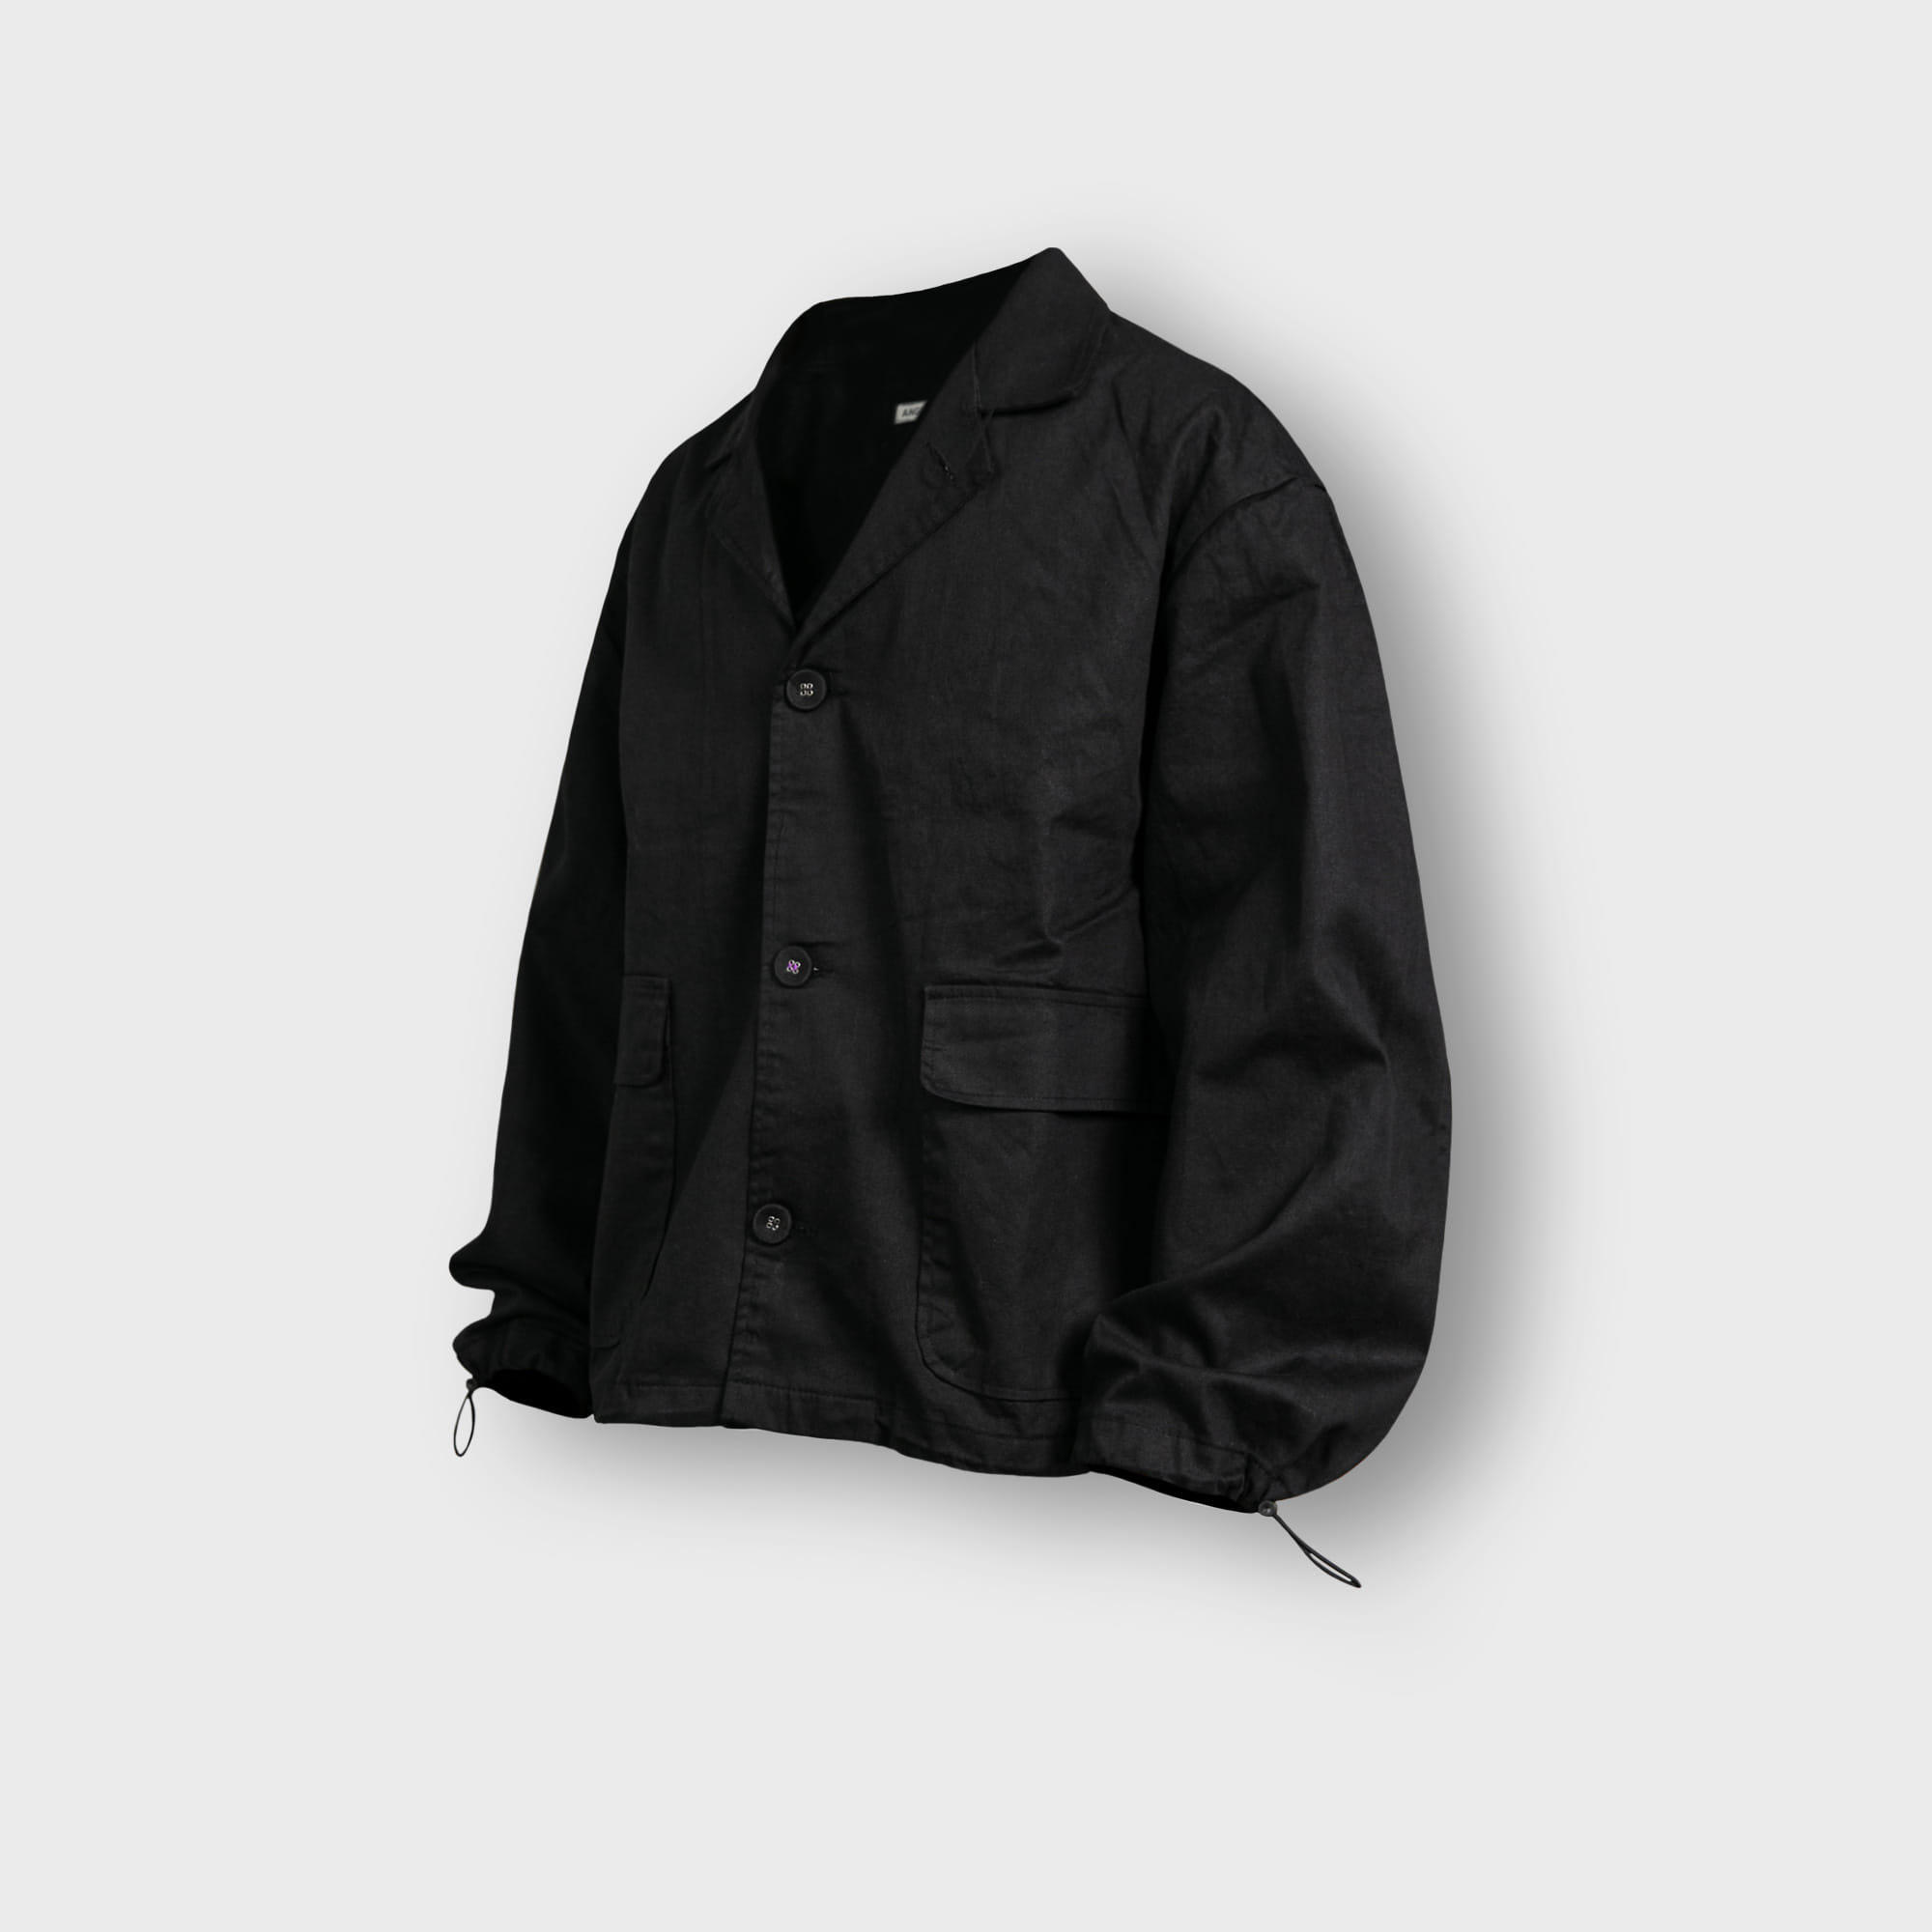 [AG] Twill Cotton String Shirt Jacket - Black